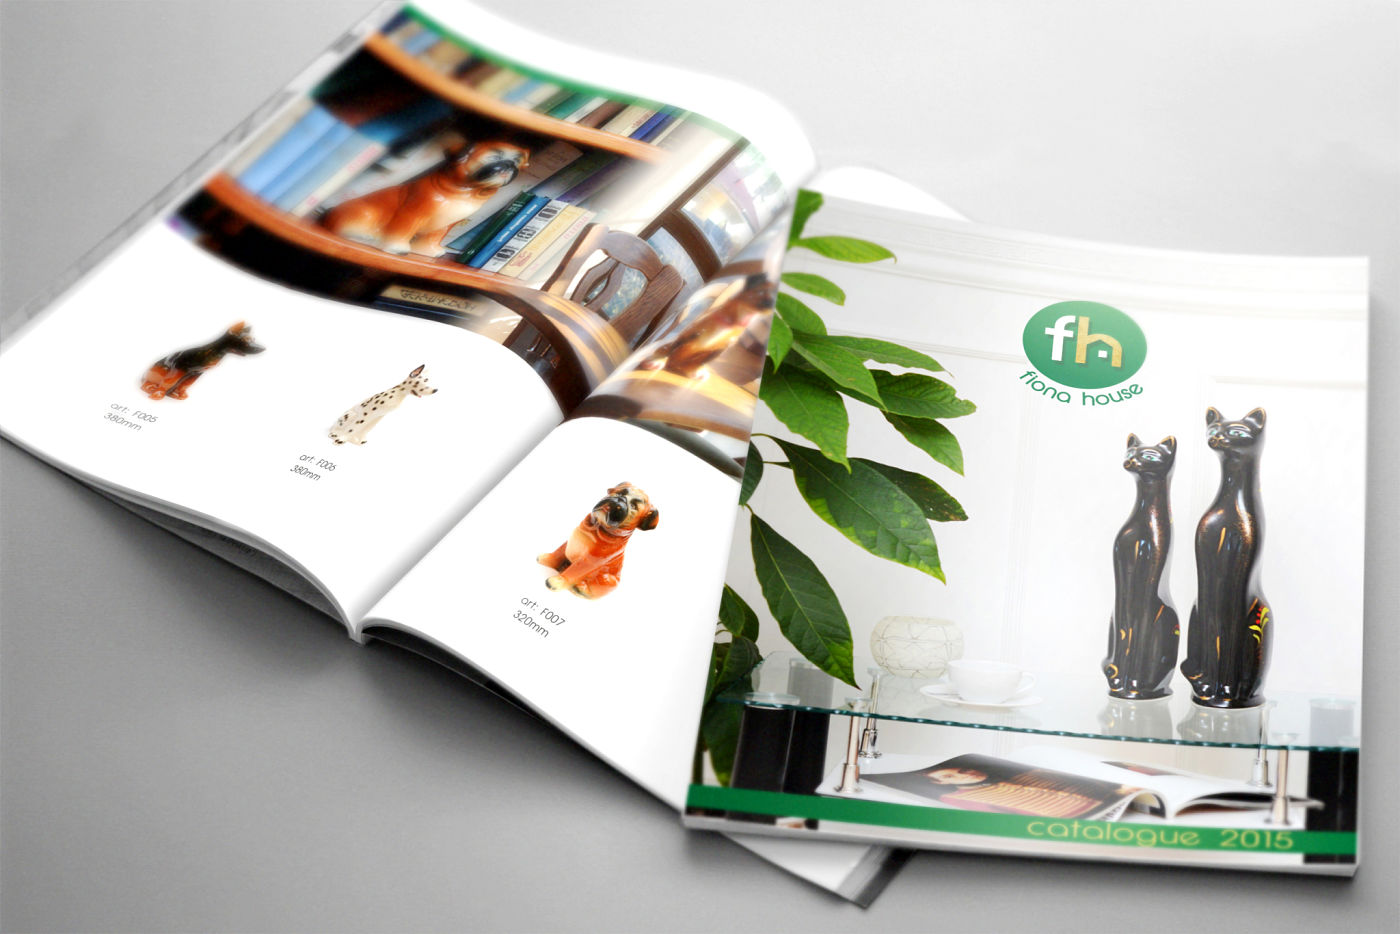 in catalogue nhanh tại tphcm